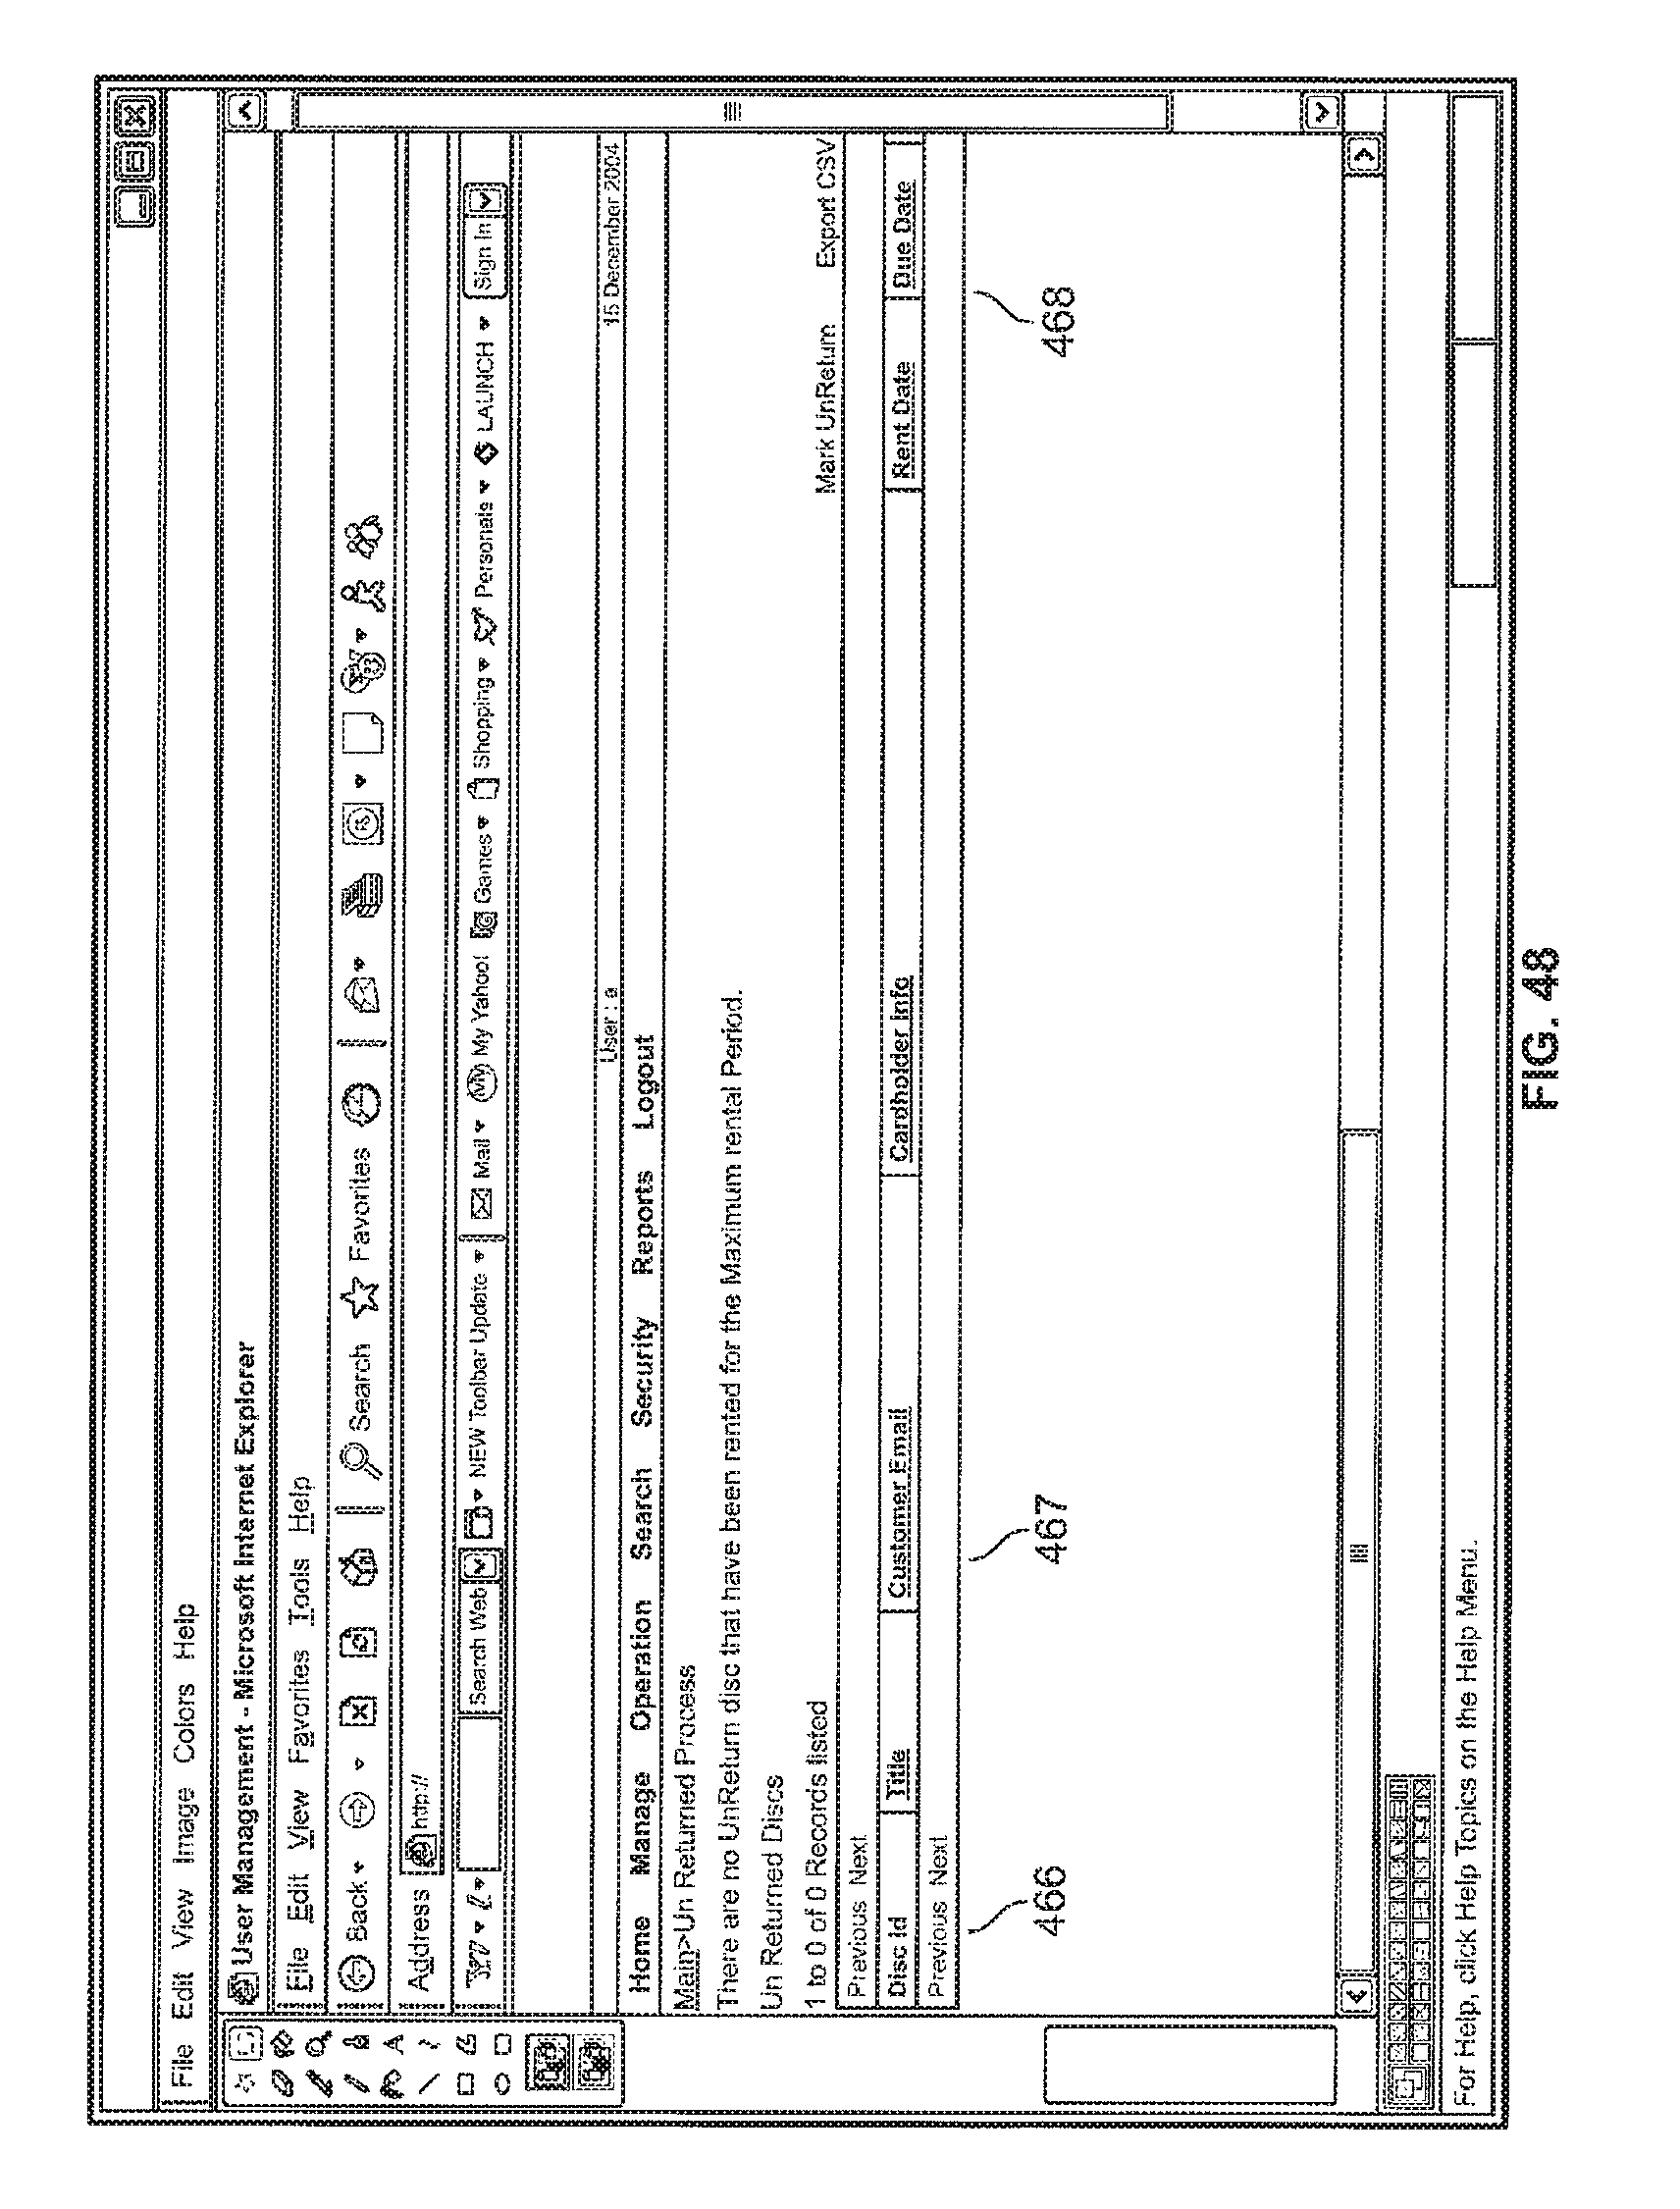 Patent Us 9865003 B2 Likewise Database Table Relationship Diagram On Deer Feeder 0 Petitions